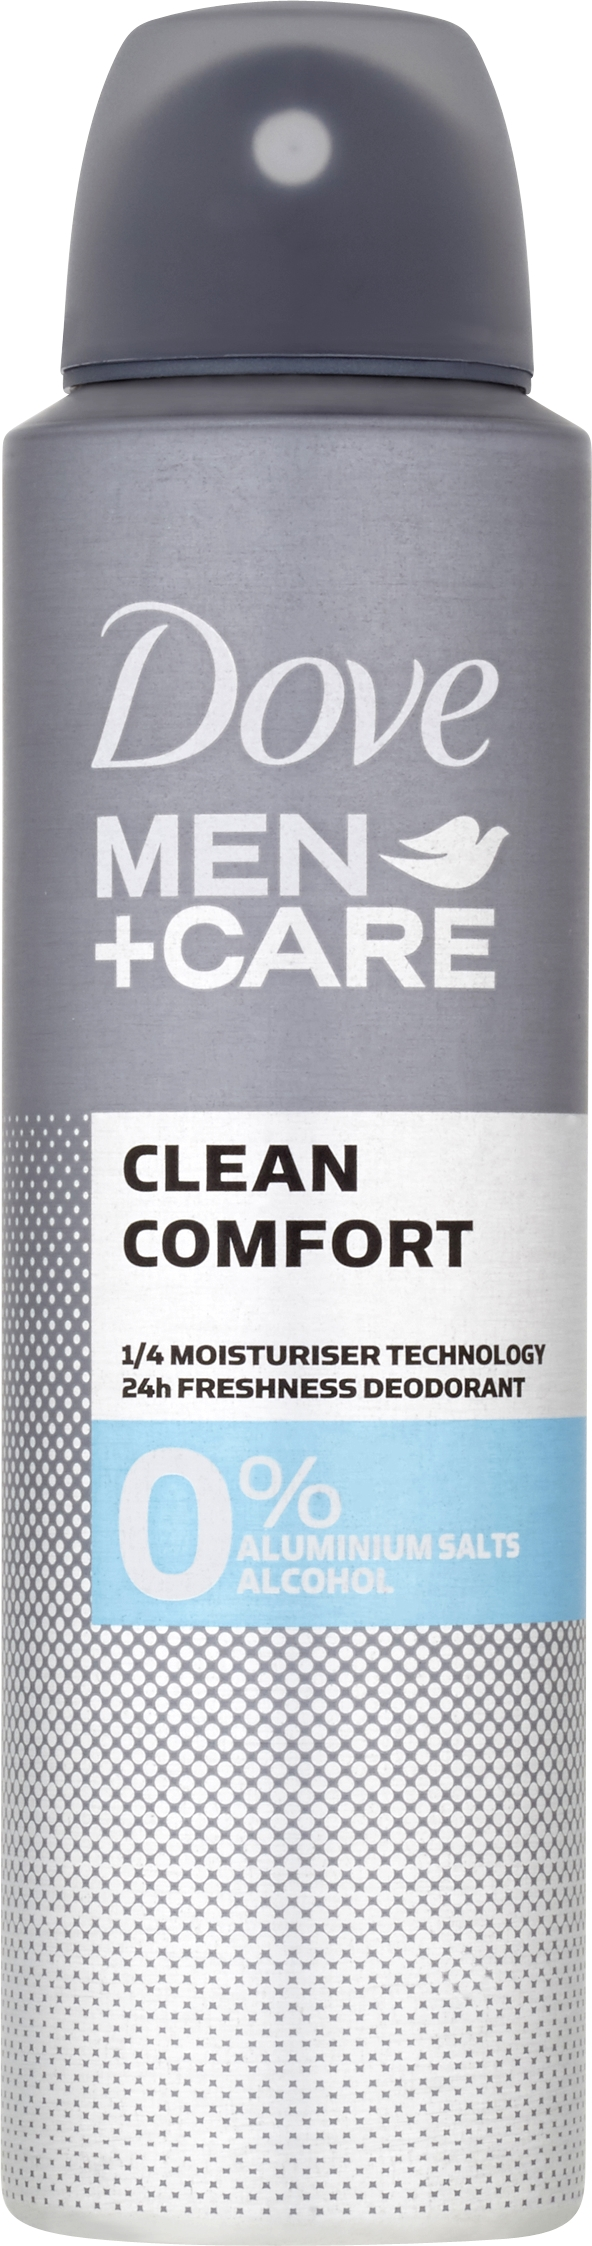 DOVE Alu-free Men  Care Deo spray Clean Comfort 150 ml